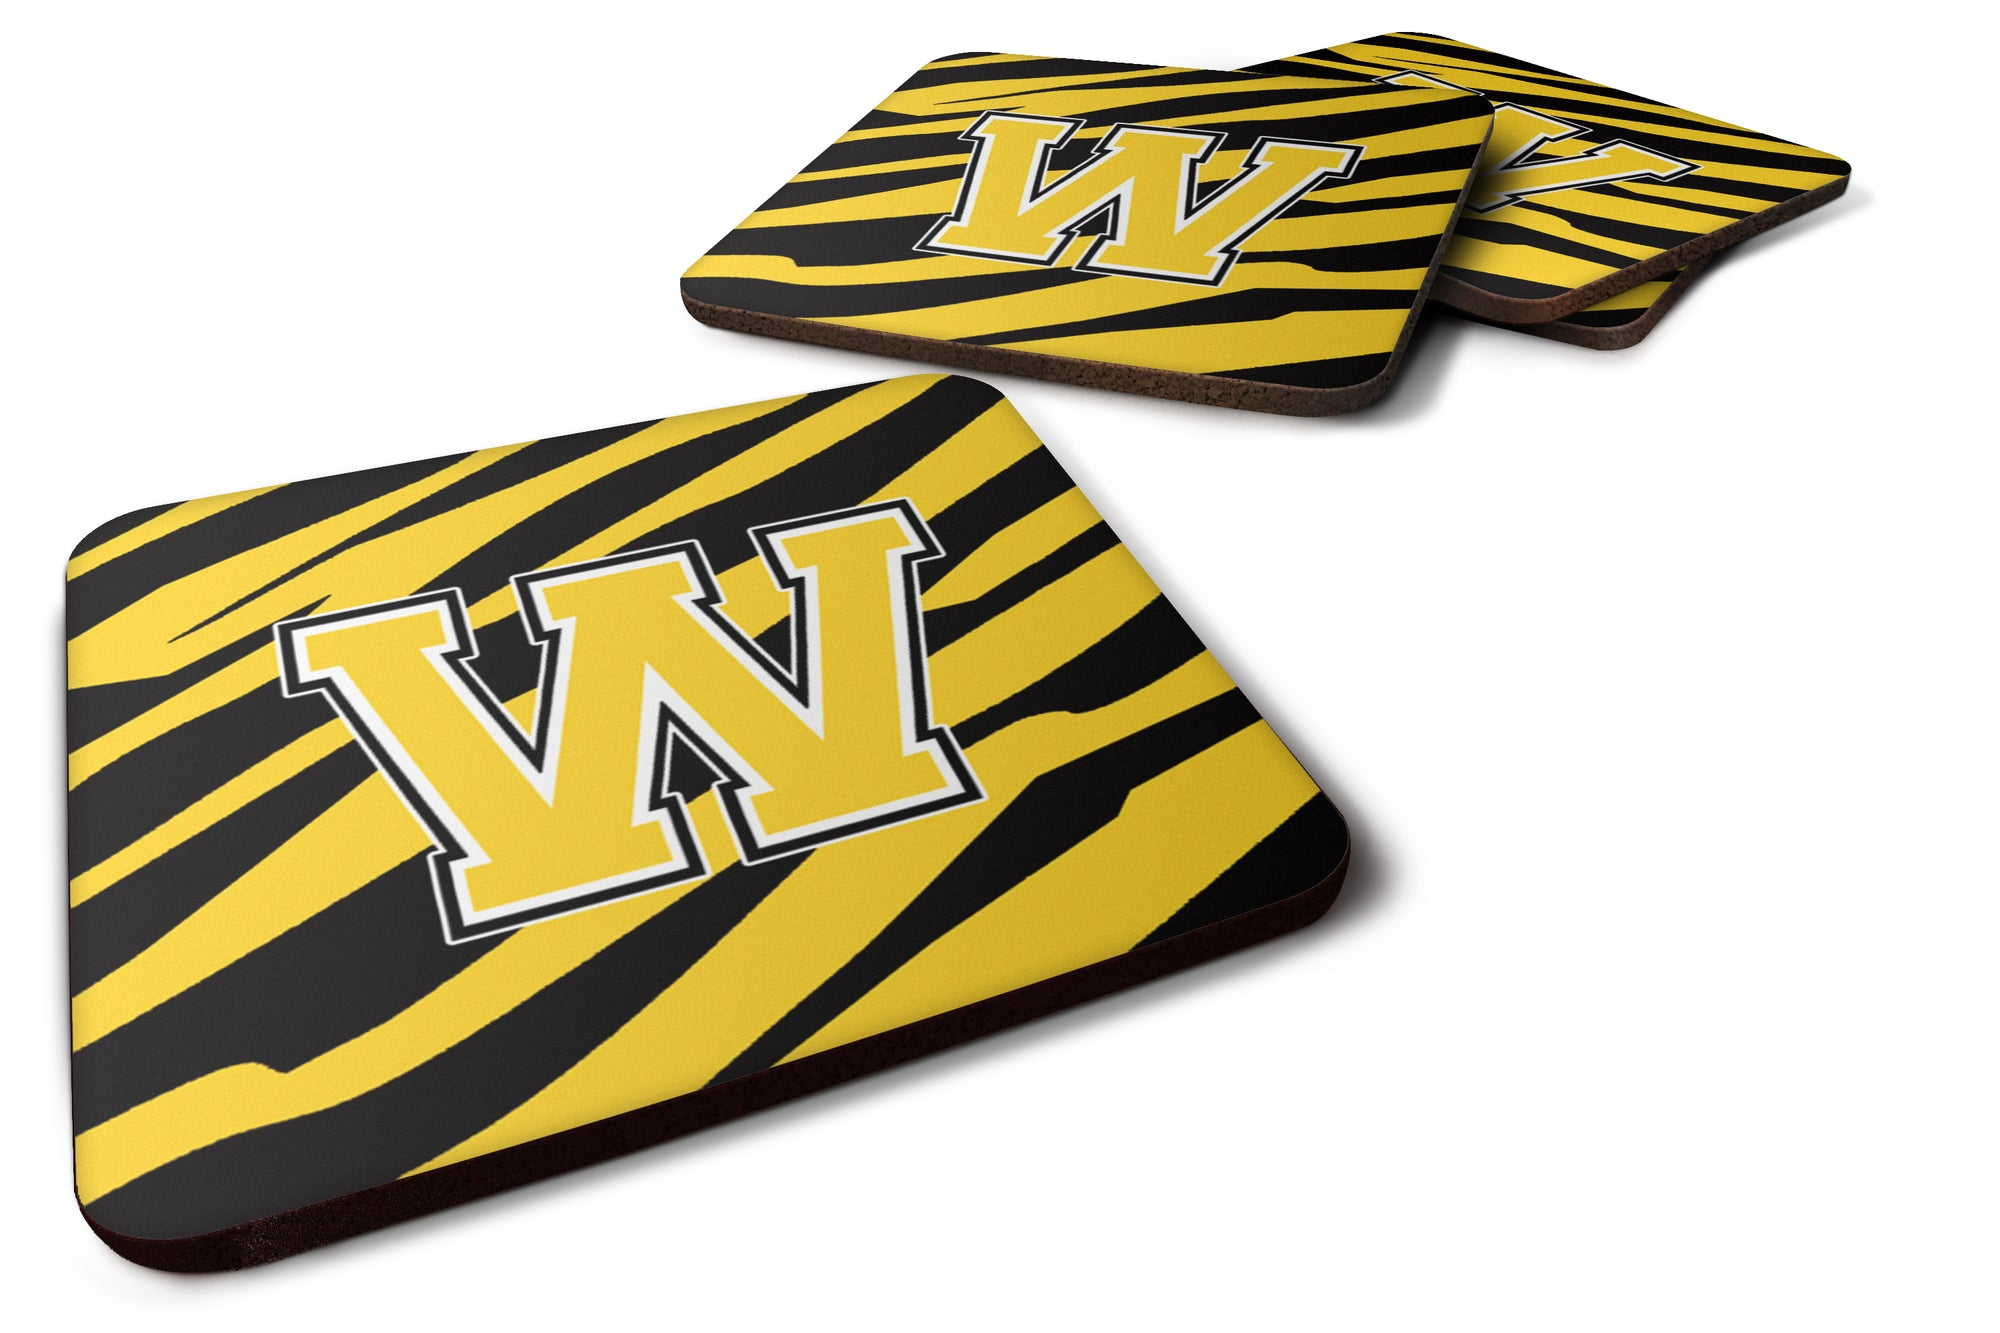 Set of 4 Monogram - Tiger Stripe - Black Gold Foam Coasters Initial Letter W by Caroline's Treasures